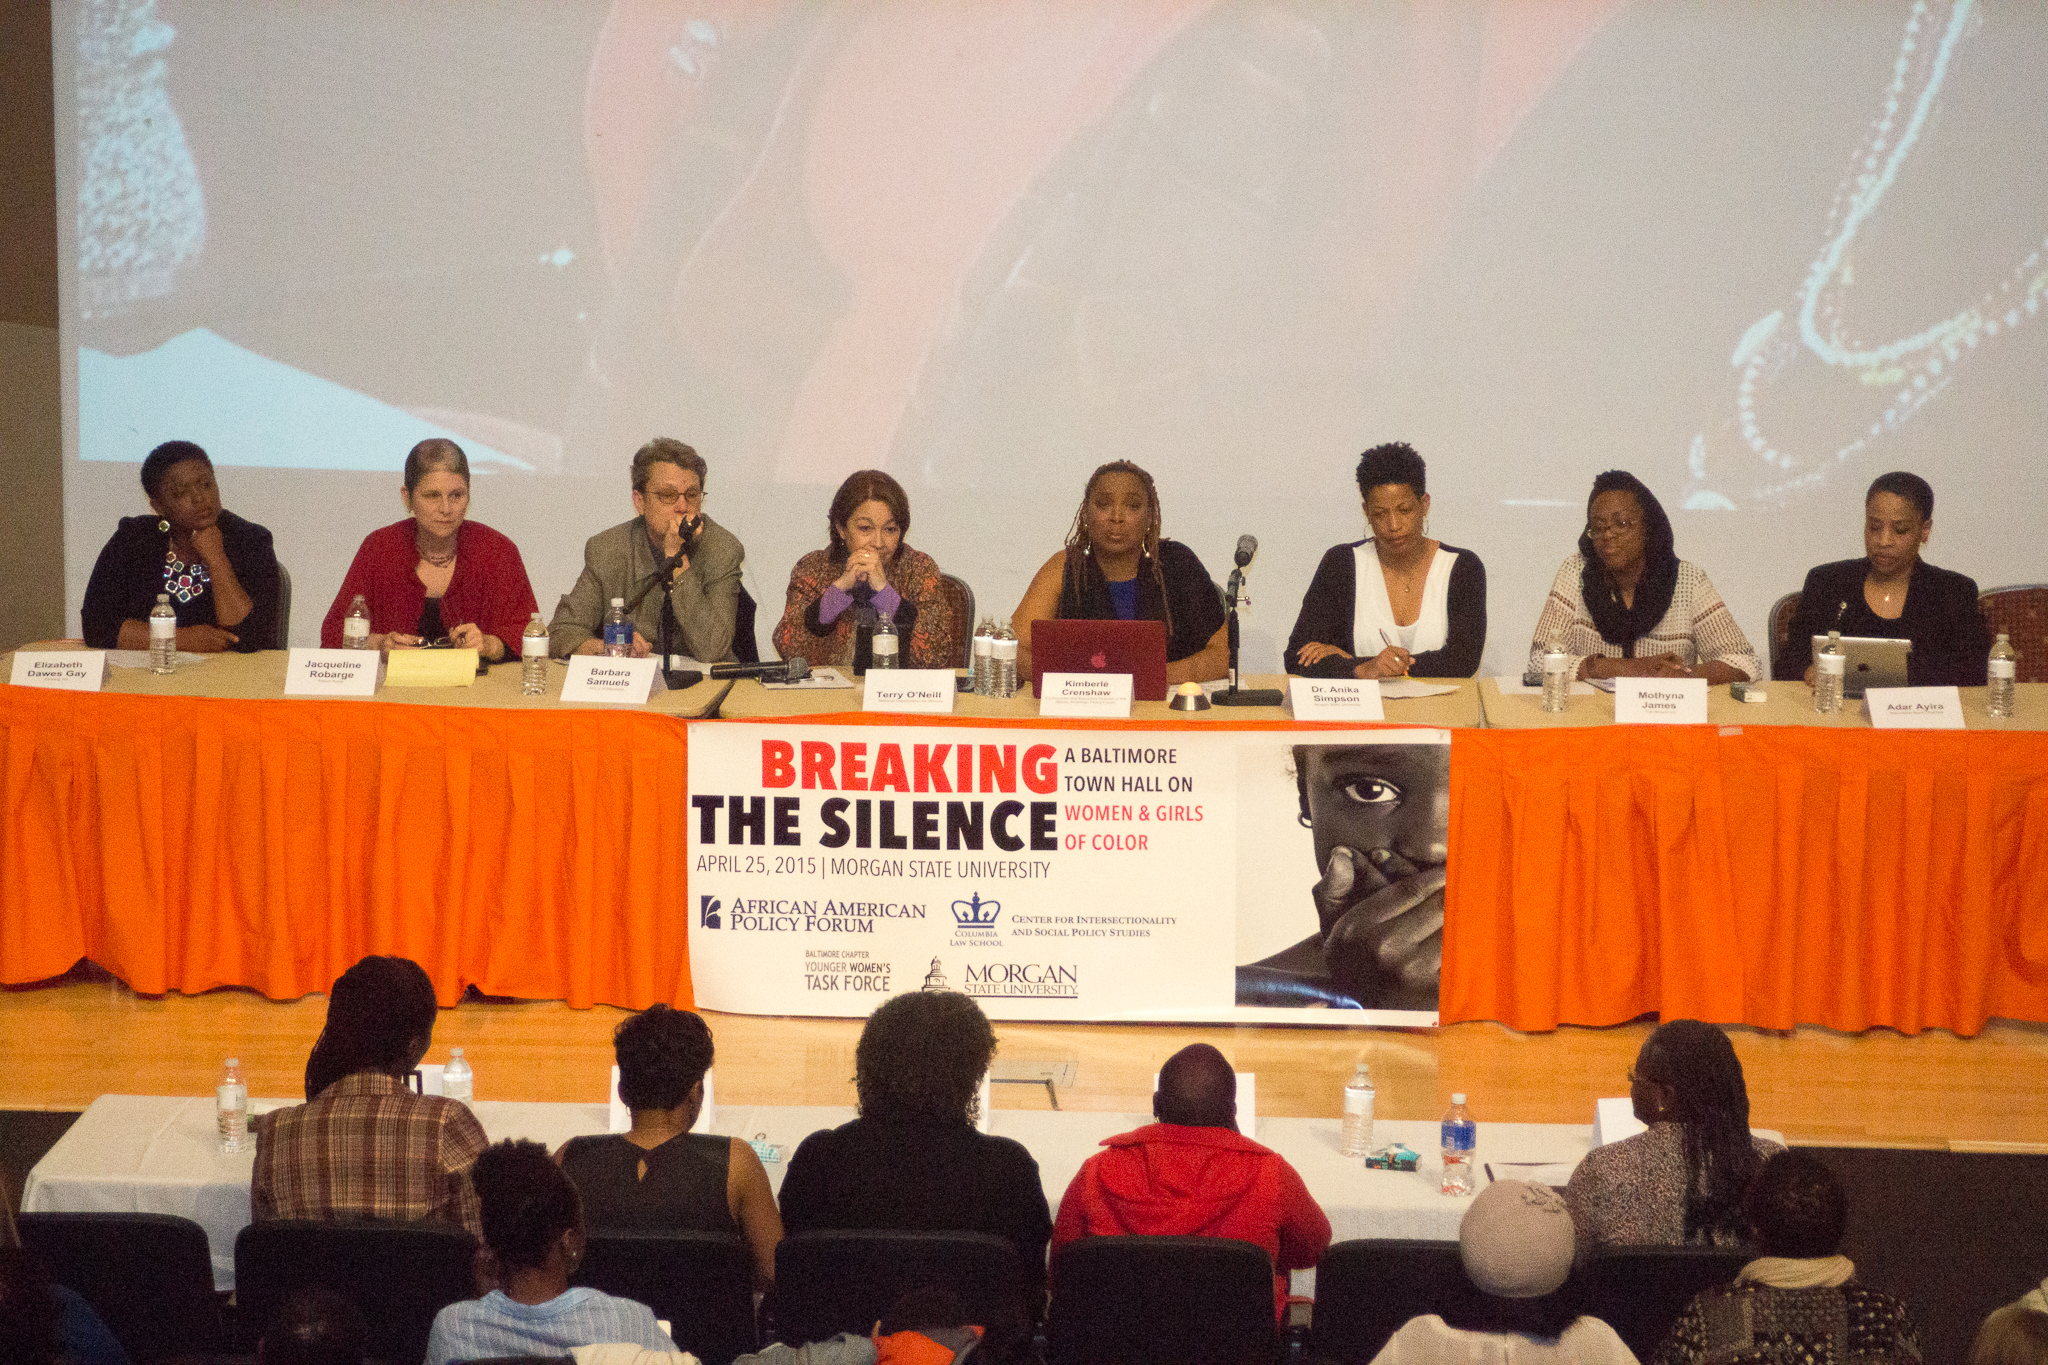 Breakng the Silence Baltimore Townhall-104.jpg